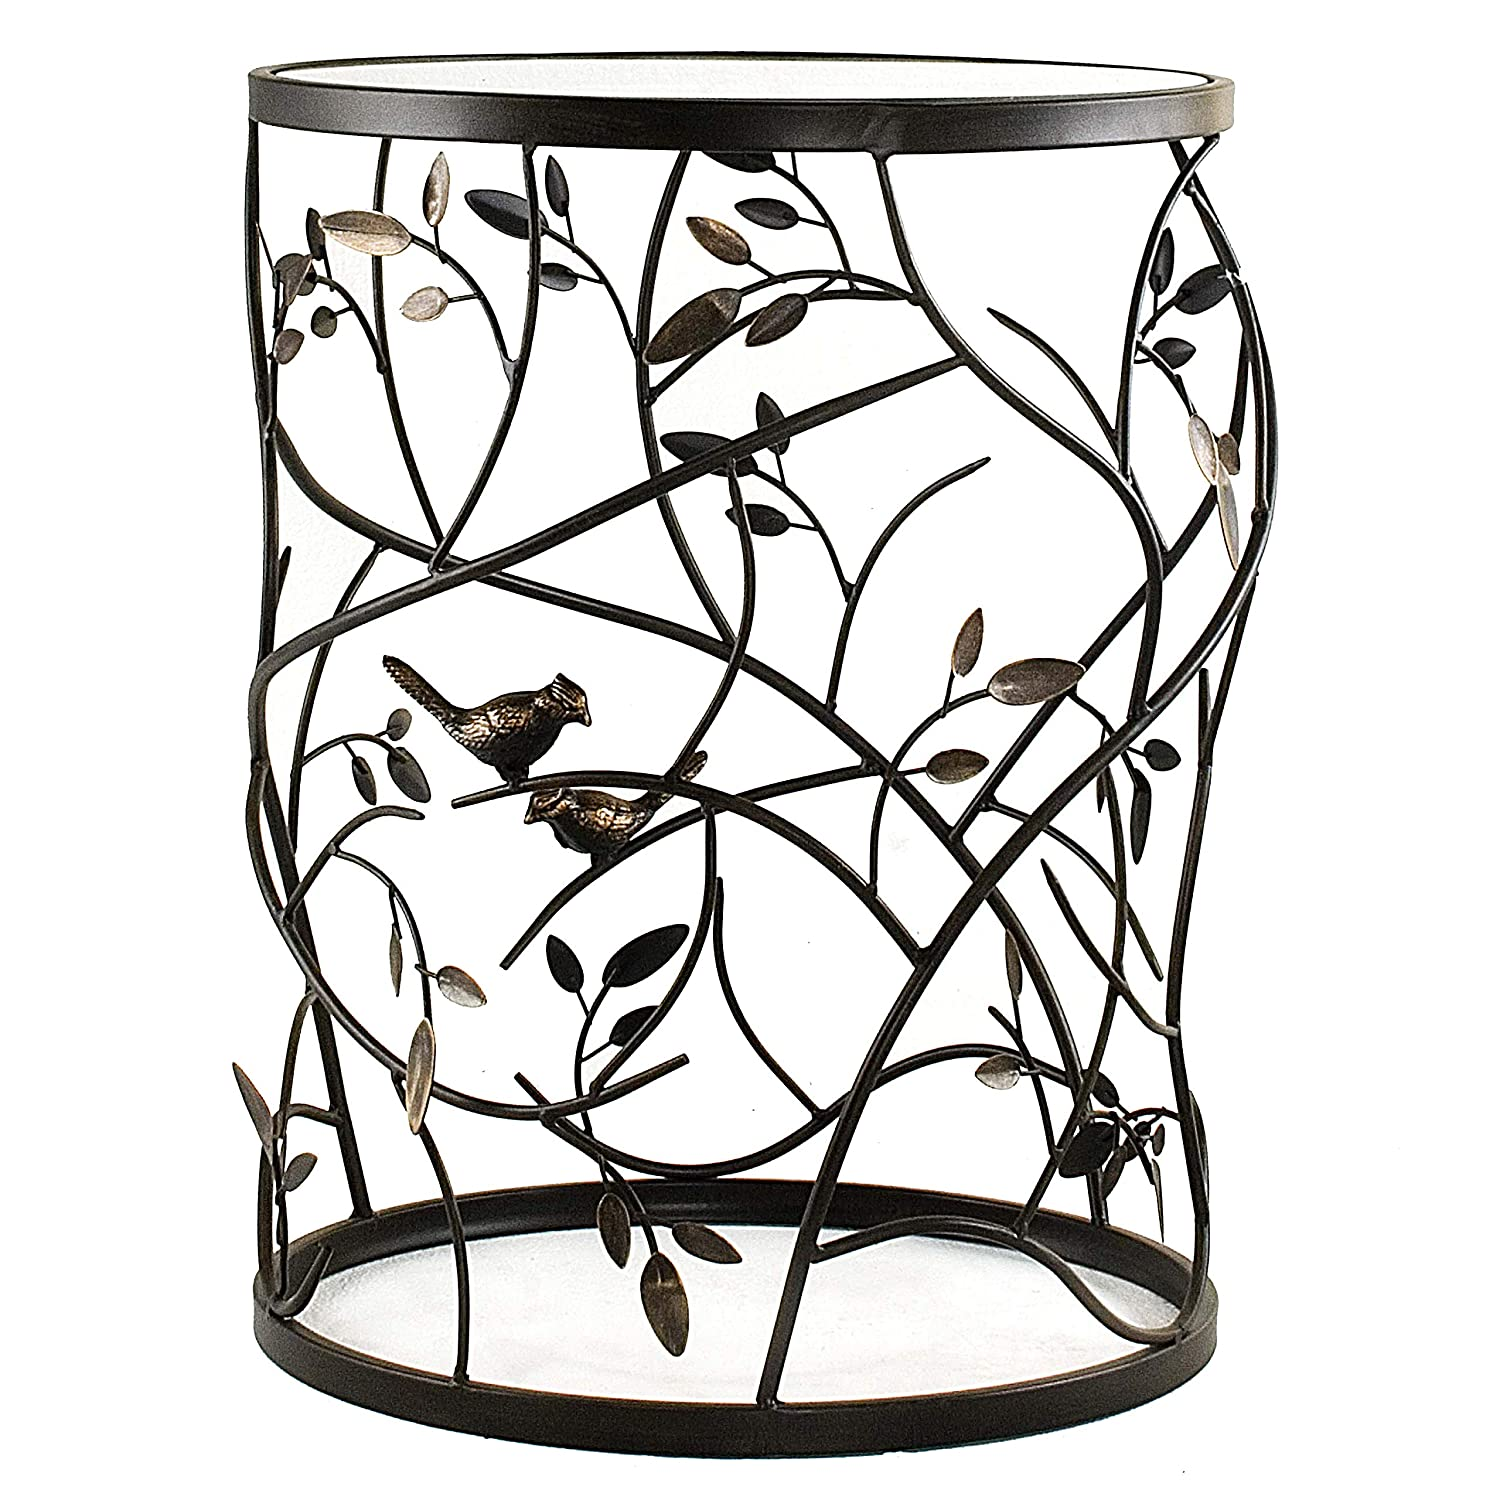 FirsTime Co. BTGLVS-L Antique Bronze Large Bird and Branches Side Glass Tabletop Accent Table, 22 H x 16.5 W x 16.5 D, Aged